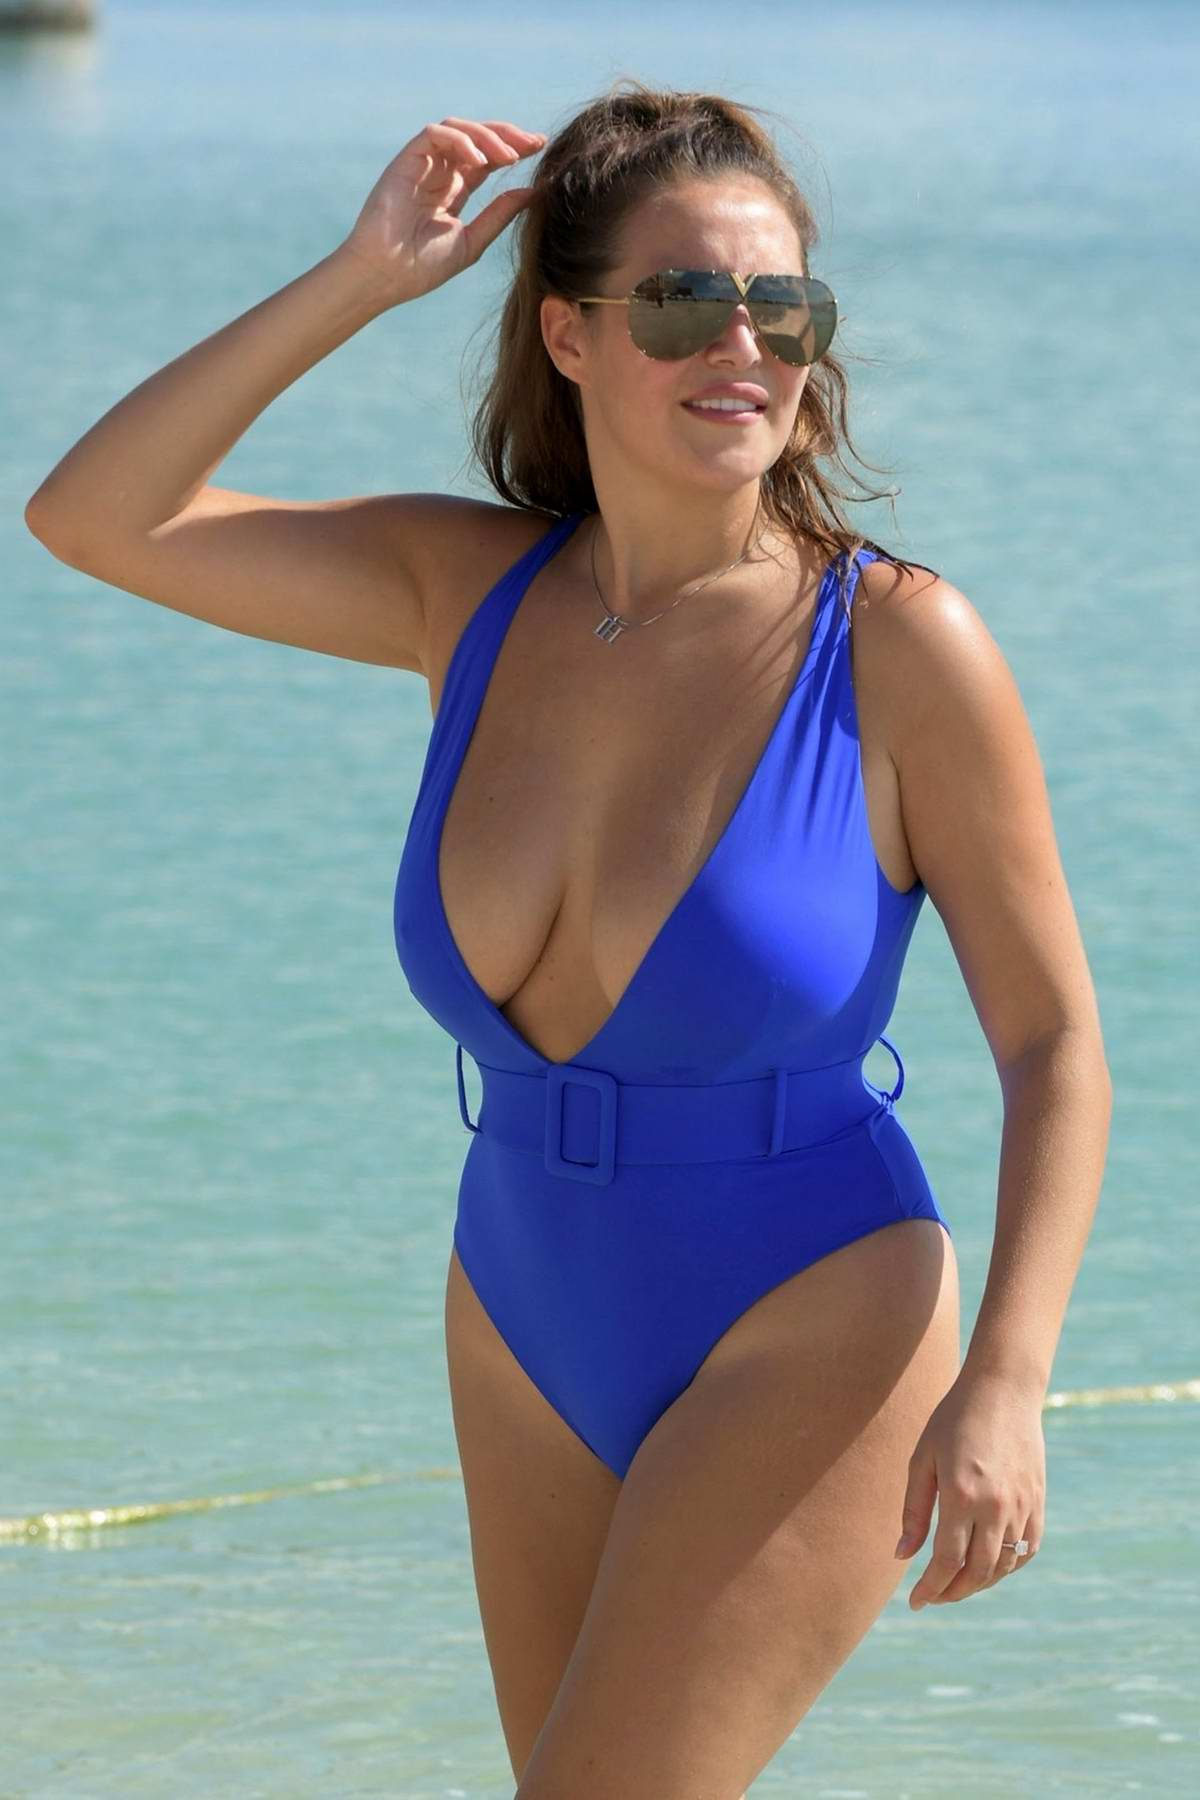 Chloe Goodman seen wearing a blue swimsuit while on her holidays in Dubai, UAE